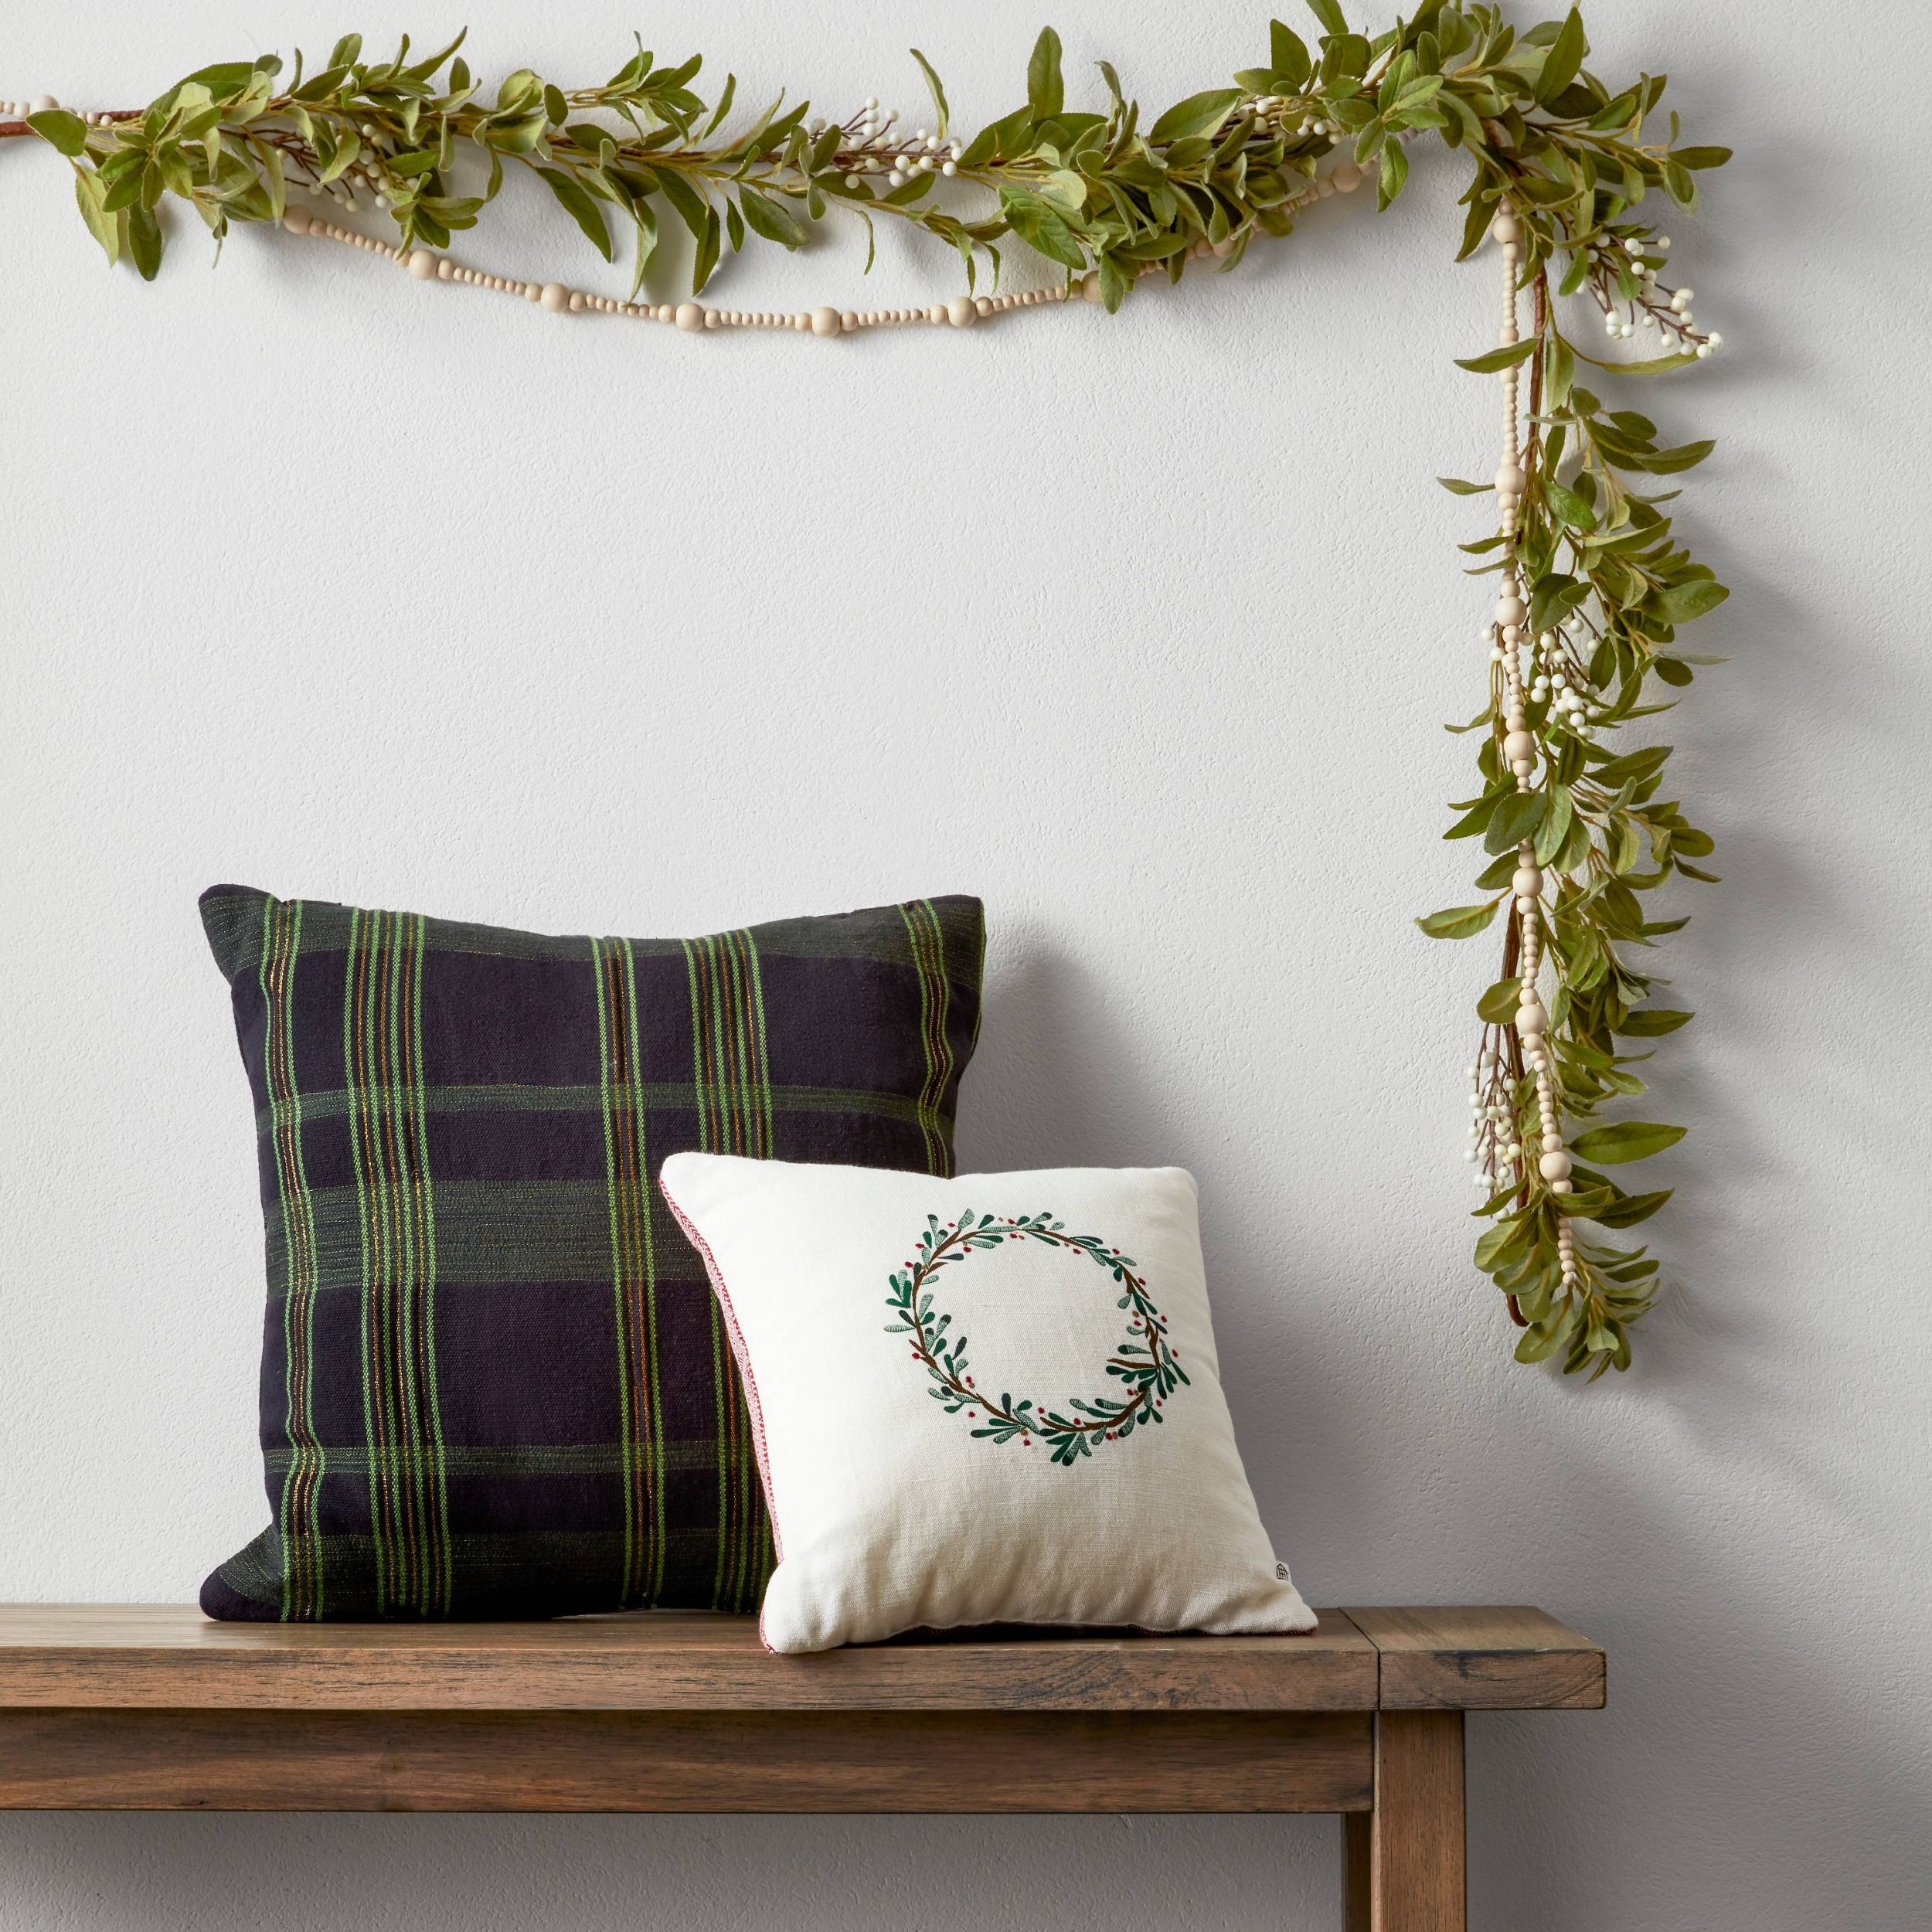 Shop Hearth & Hand by Magnolia - The Inspired Room